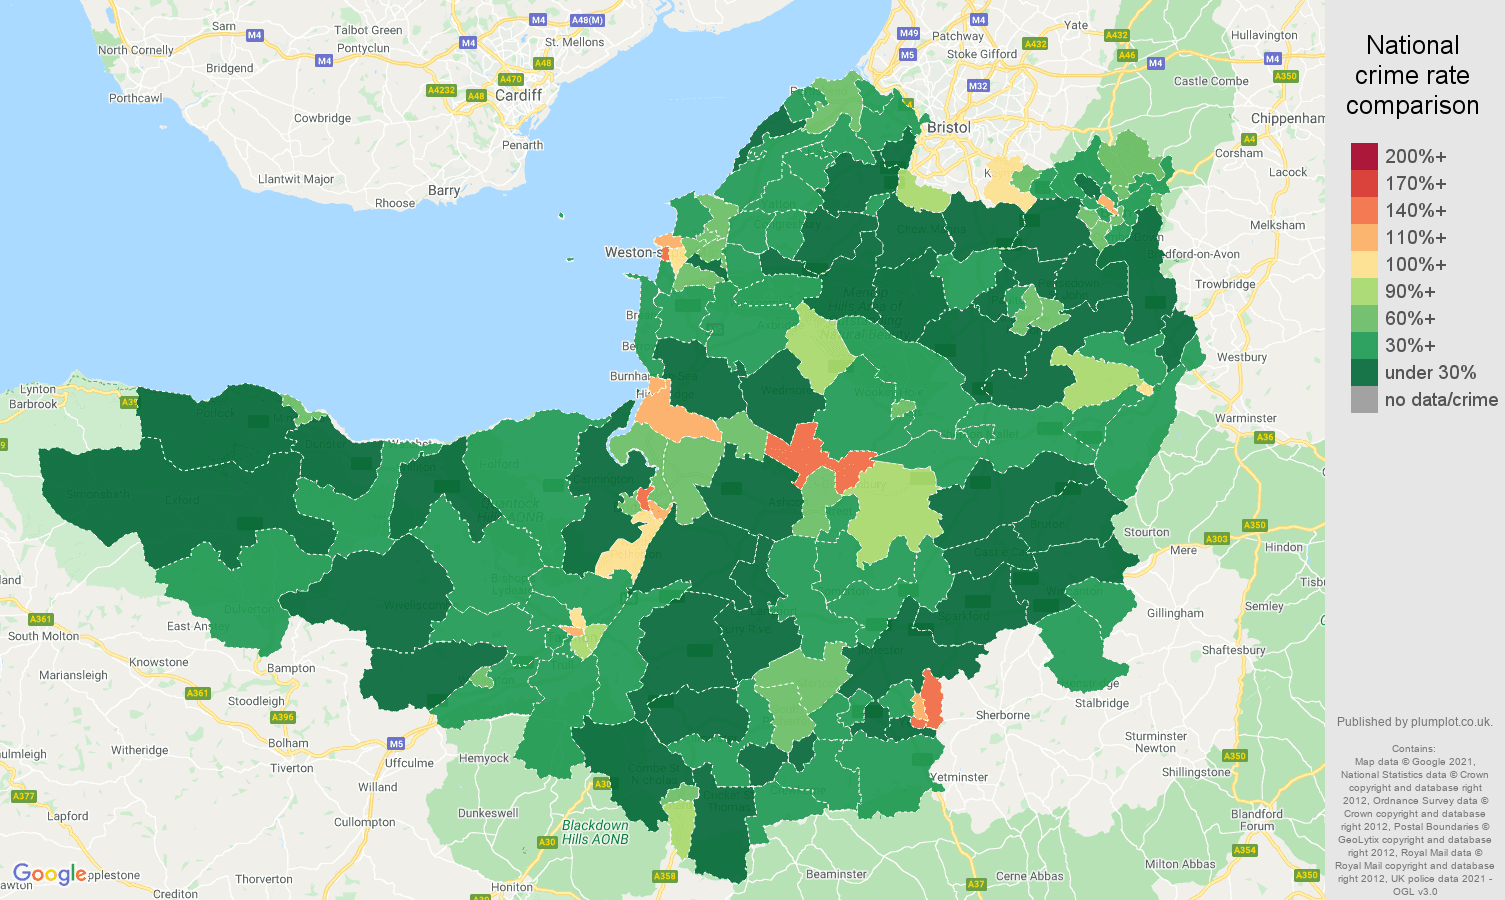 Somerset antisocial behaviour crime rate comparison map